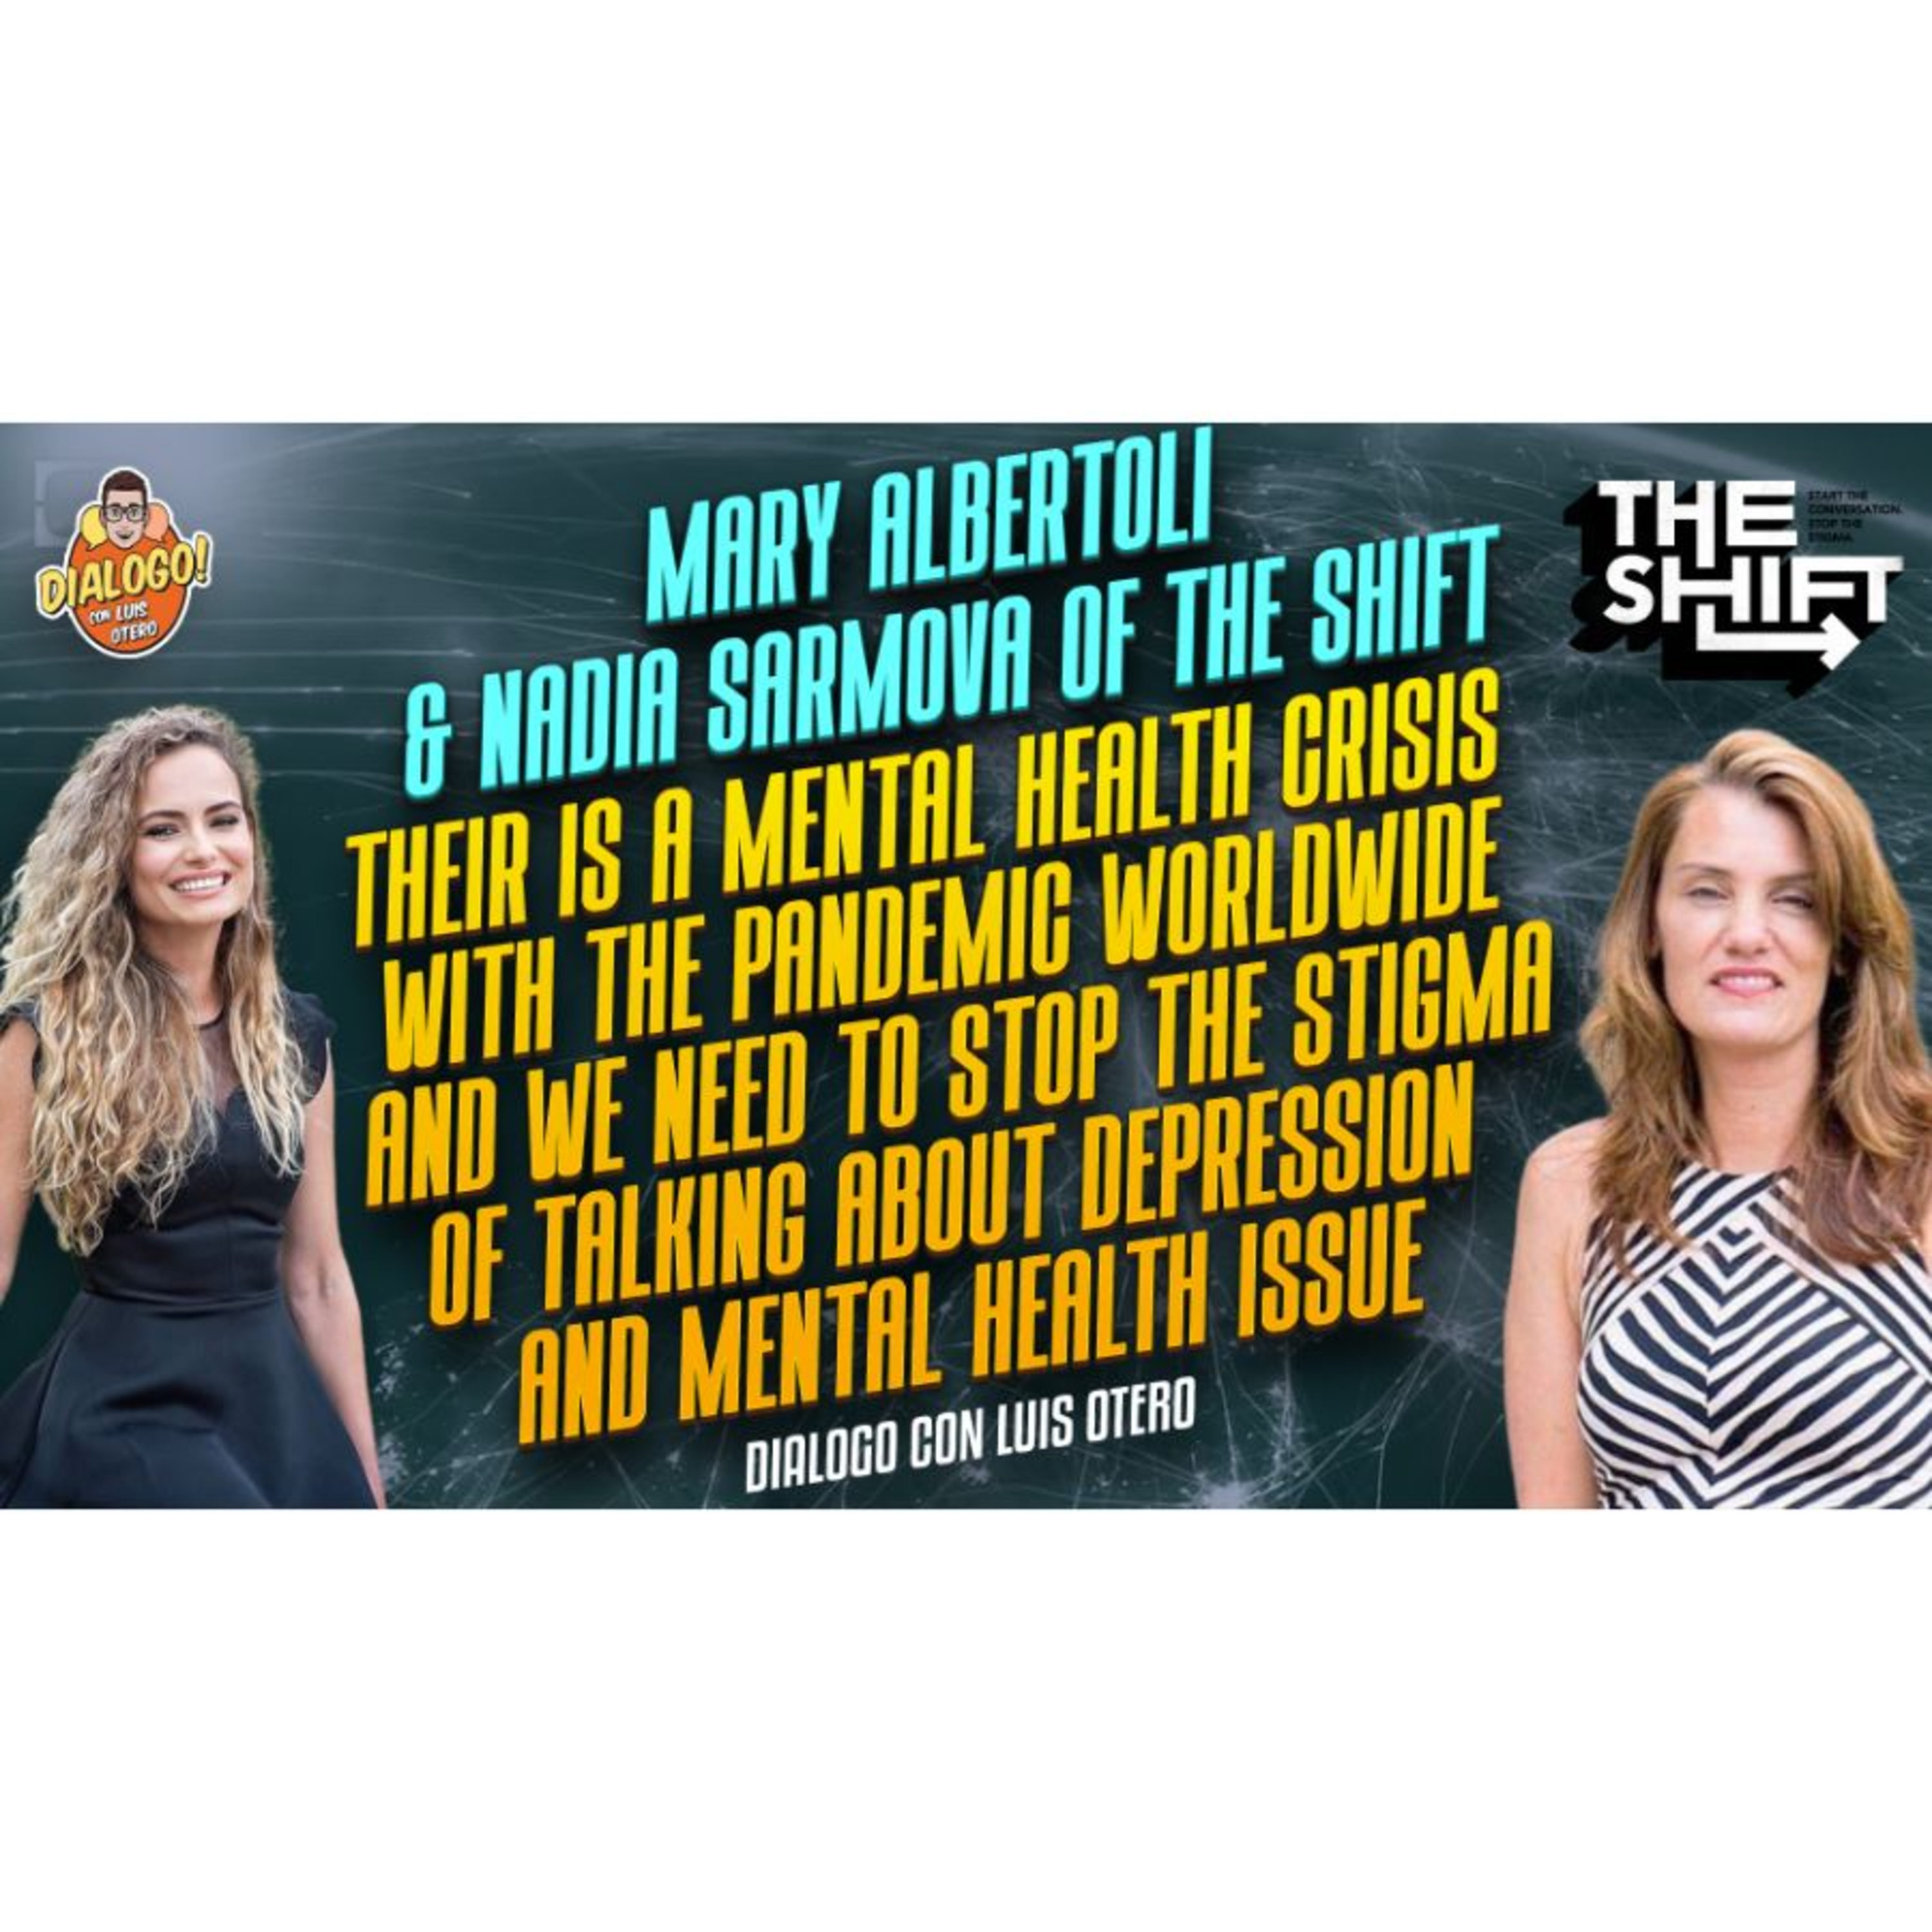 """Ep.051- The Shift with Mary Albertoli & Nadia Sarmova """"Their is a Mental Health Crisis with the Pandemic Worldwide and we need to stop the stigma of talking about Depression"""""""